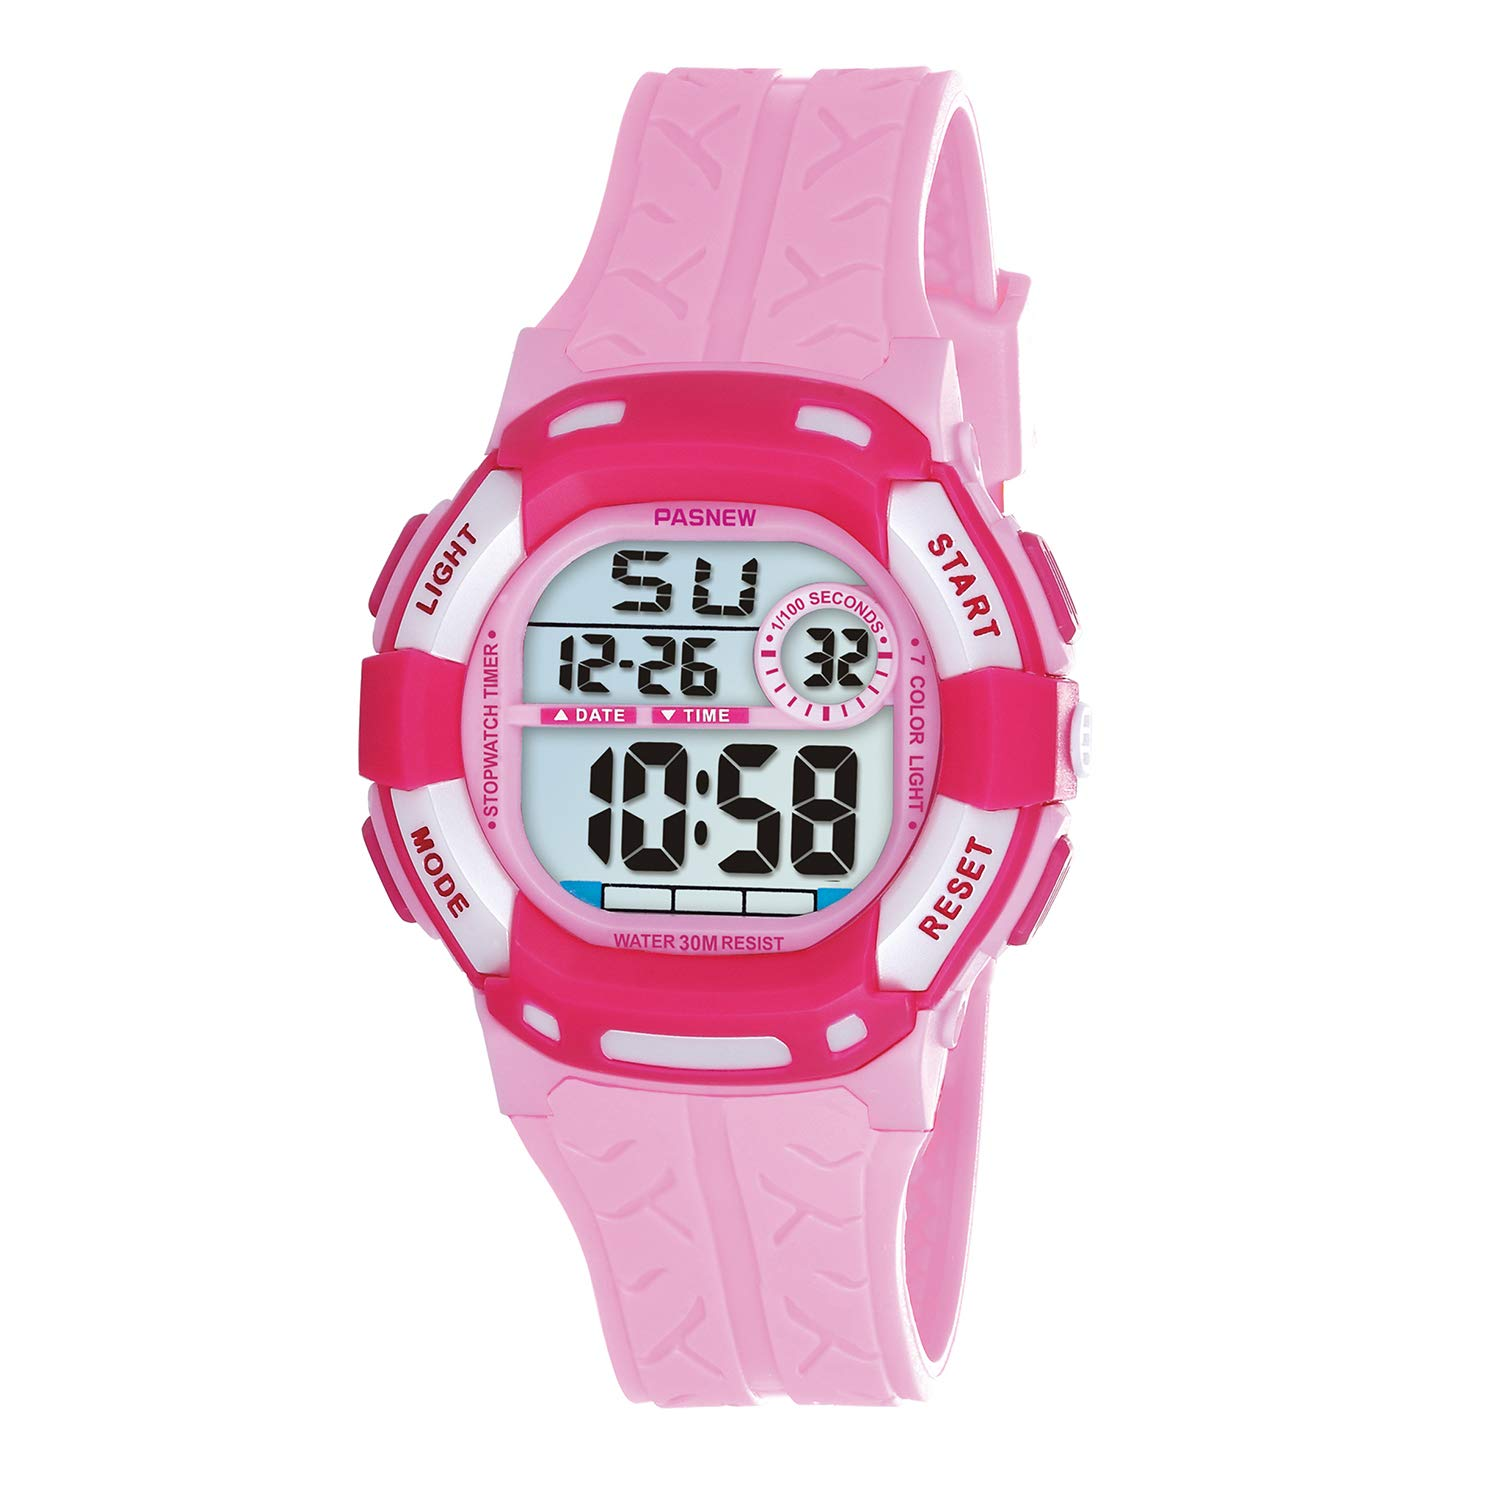 PASNEW Kids Watches Waterproof 100FT Digital Sports Wristwatch with 7-Color Flashing LED Light Alarm Stopwatch Chime Date Day Pink Rose